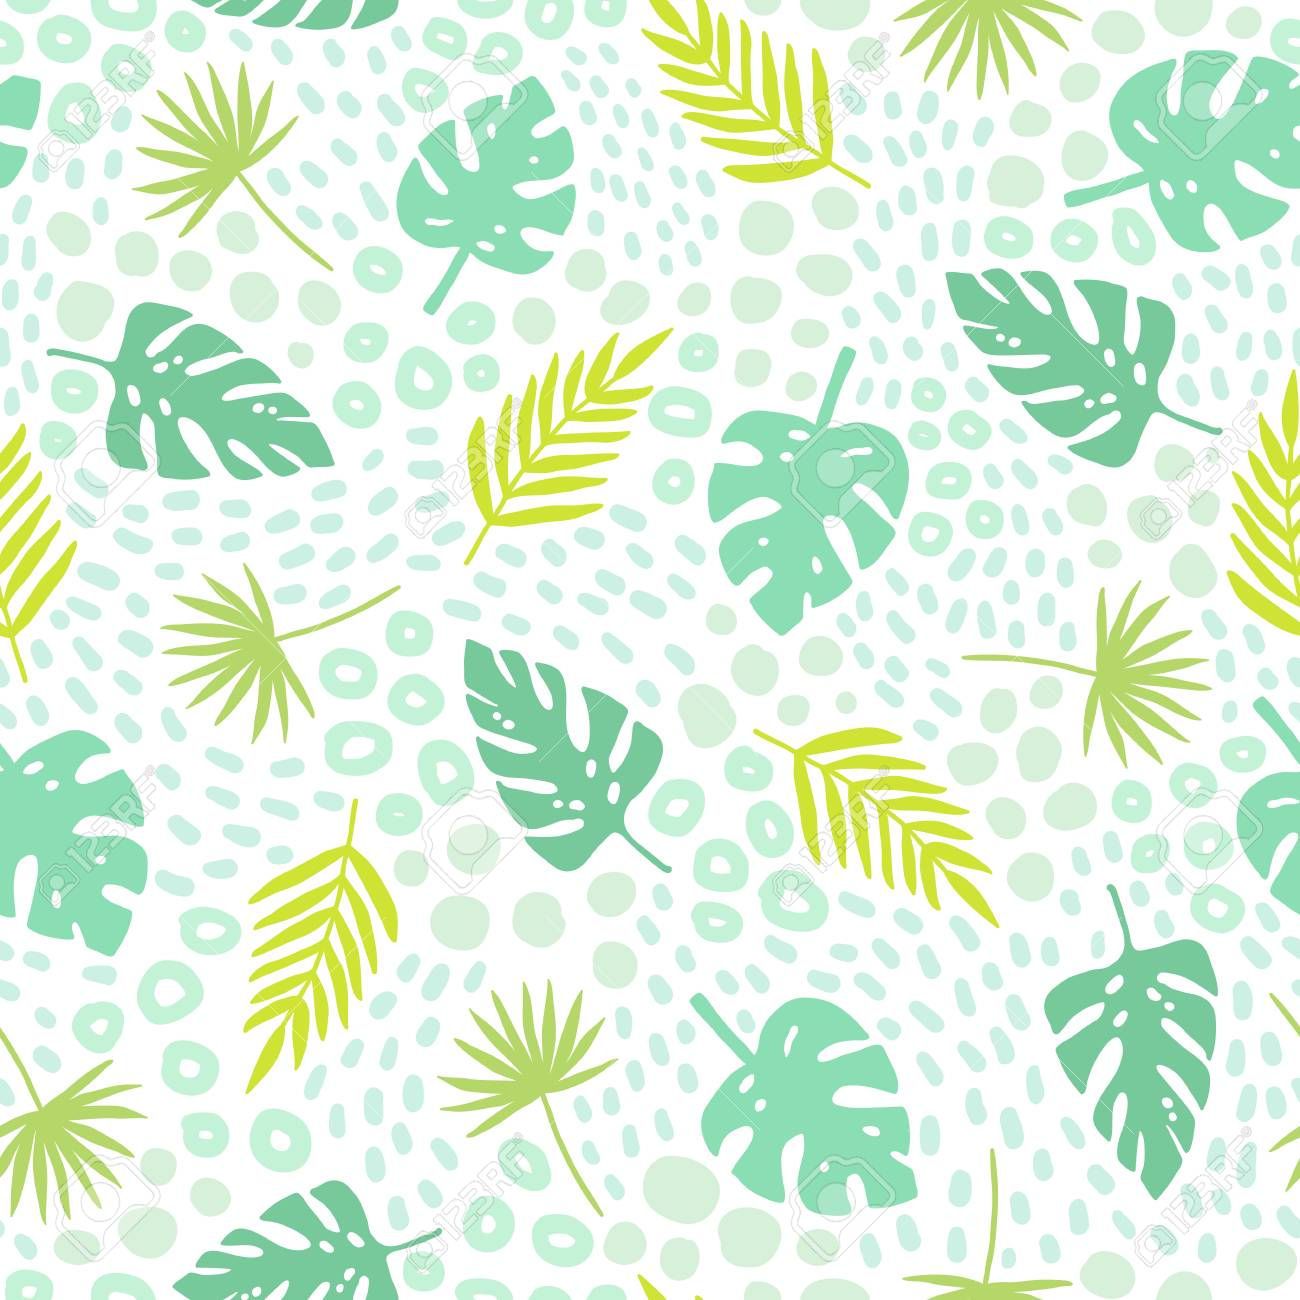 Tropical Palm Leaves Seamless Pattern Cute Cartoon Style Vector Stock Photo Picture And Royalty Free Image Image 92482790